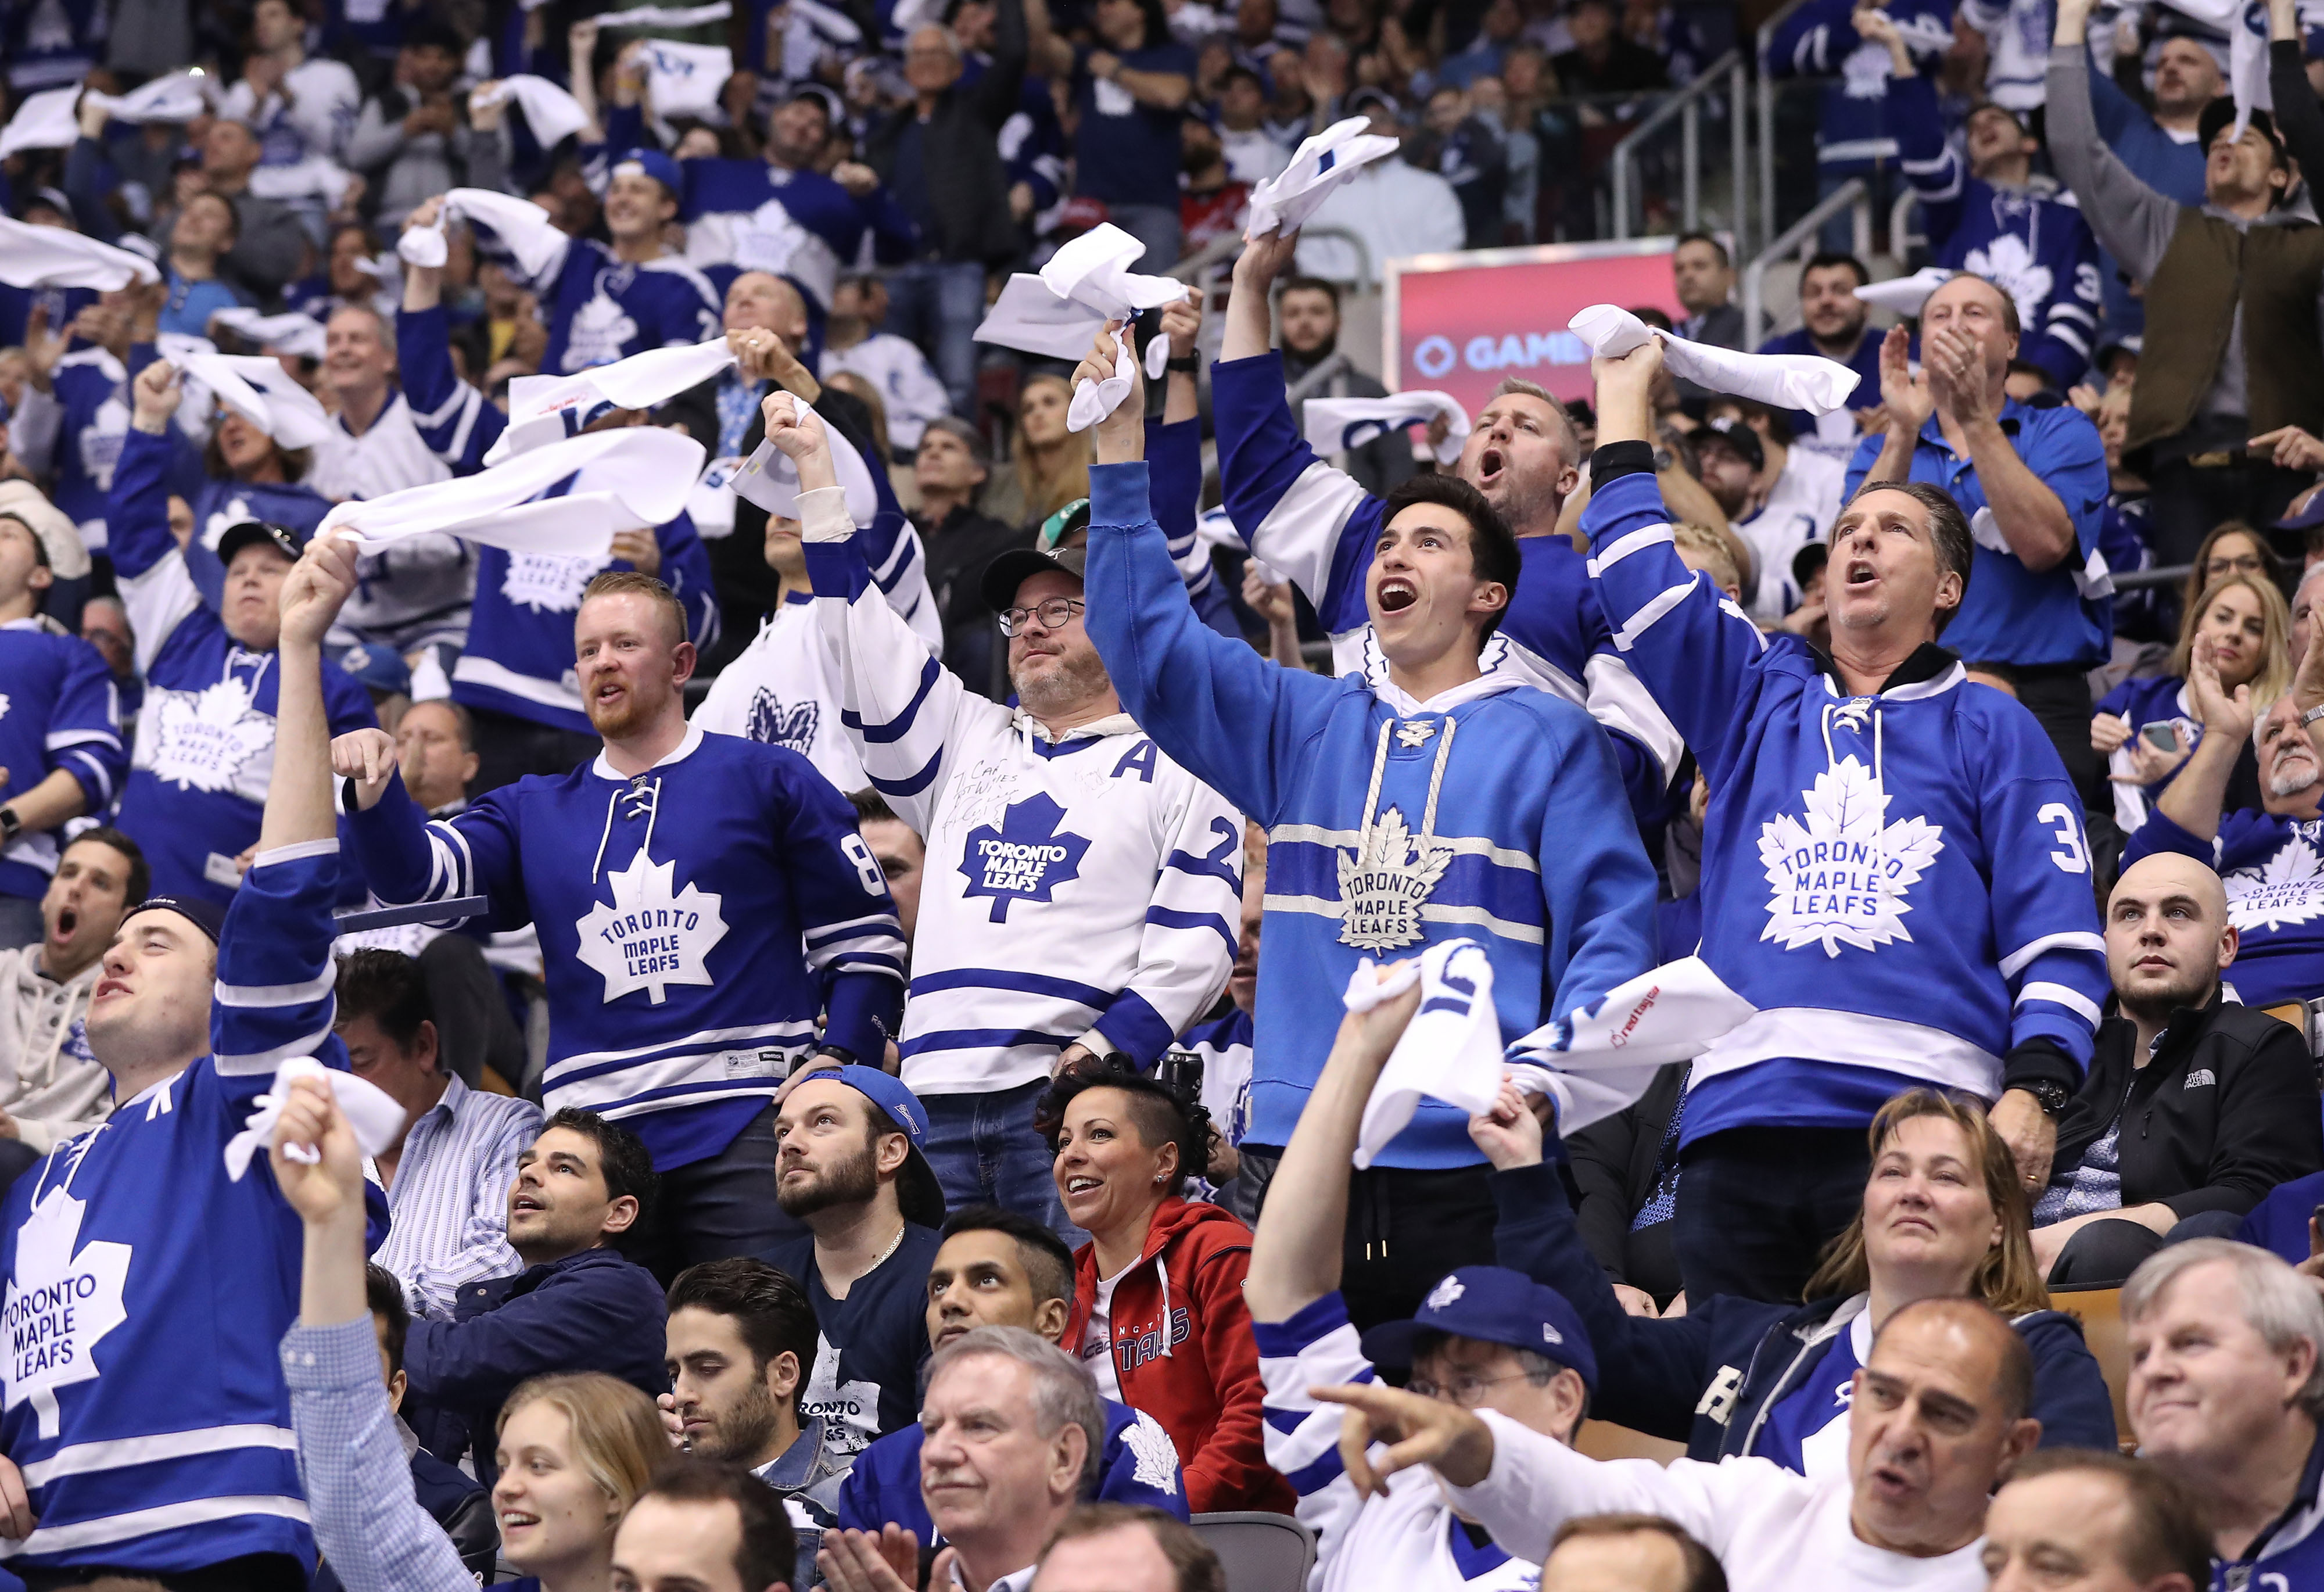 Monday's National Hockey League playoffs: Bozak's OT goal gives Leafs 2-1 series lead